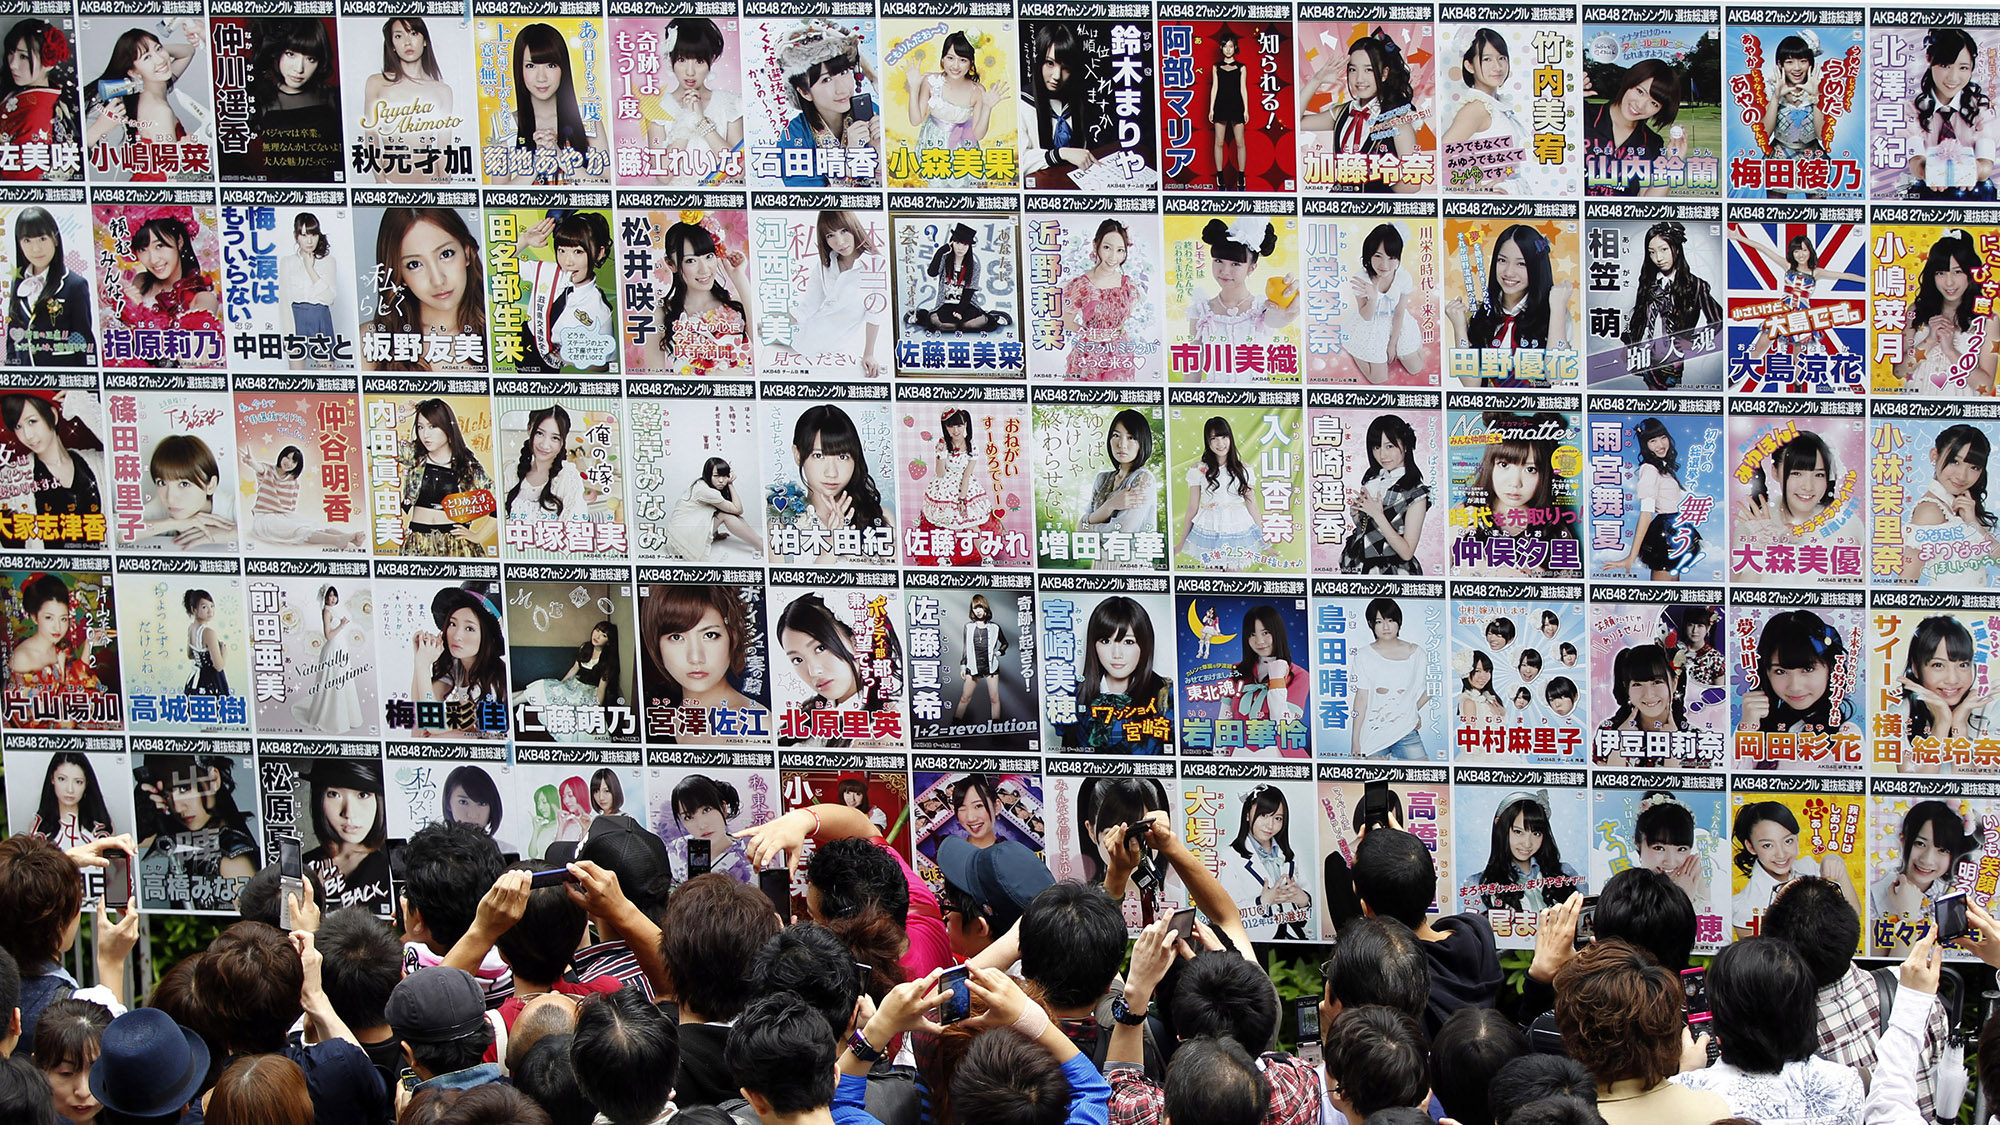 "Fans gather in front of ""election"" posters, showing the contestants for the new leader of Japan's girl pop group AKB48, ahead of an annual popularity ""election"" event at Tokyo's Budokan gymnasium June 6, 2012. In a three-hour show broadcast live from Tokyo's hallowed Budokan, 23-year-old Yuko Oshima was selected as leader and face of the group, which has been recognized by Guinness as the world's biggest girl pop group. AKB48 was founded in 2005, and is known for its perky routines and high ""kawaii,"" or cuteness, quotient. Every year, fans vote to determine 64 of the most popular girls out of a 237-member pool who are then rotated in and out of four main troupes and several affiliated groups according to their popularity. Picture taken June 6, 2012. To match story JAPAN-MUSIC/AKB48     REUTERS/Yuriko Nakao (JAPAN - Tags: ENTERTAINMENT SOCIETY) - RTR339JZ"